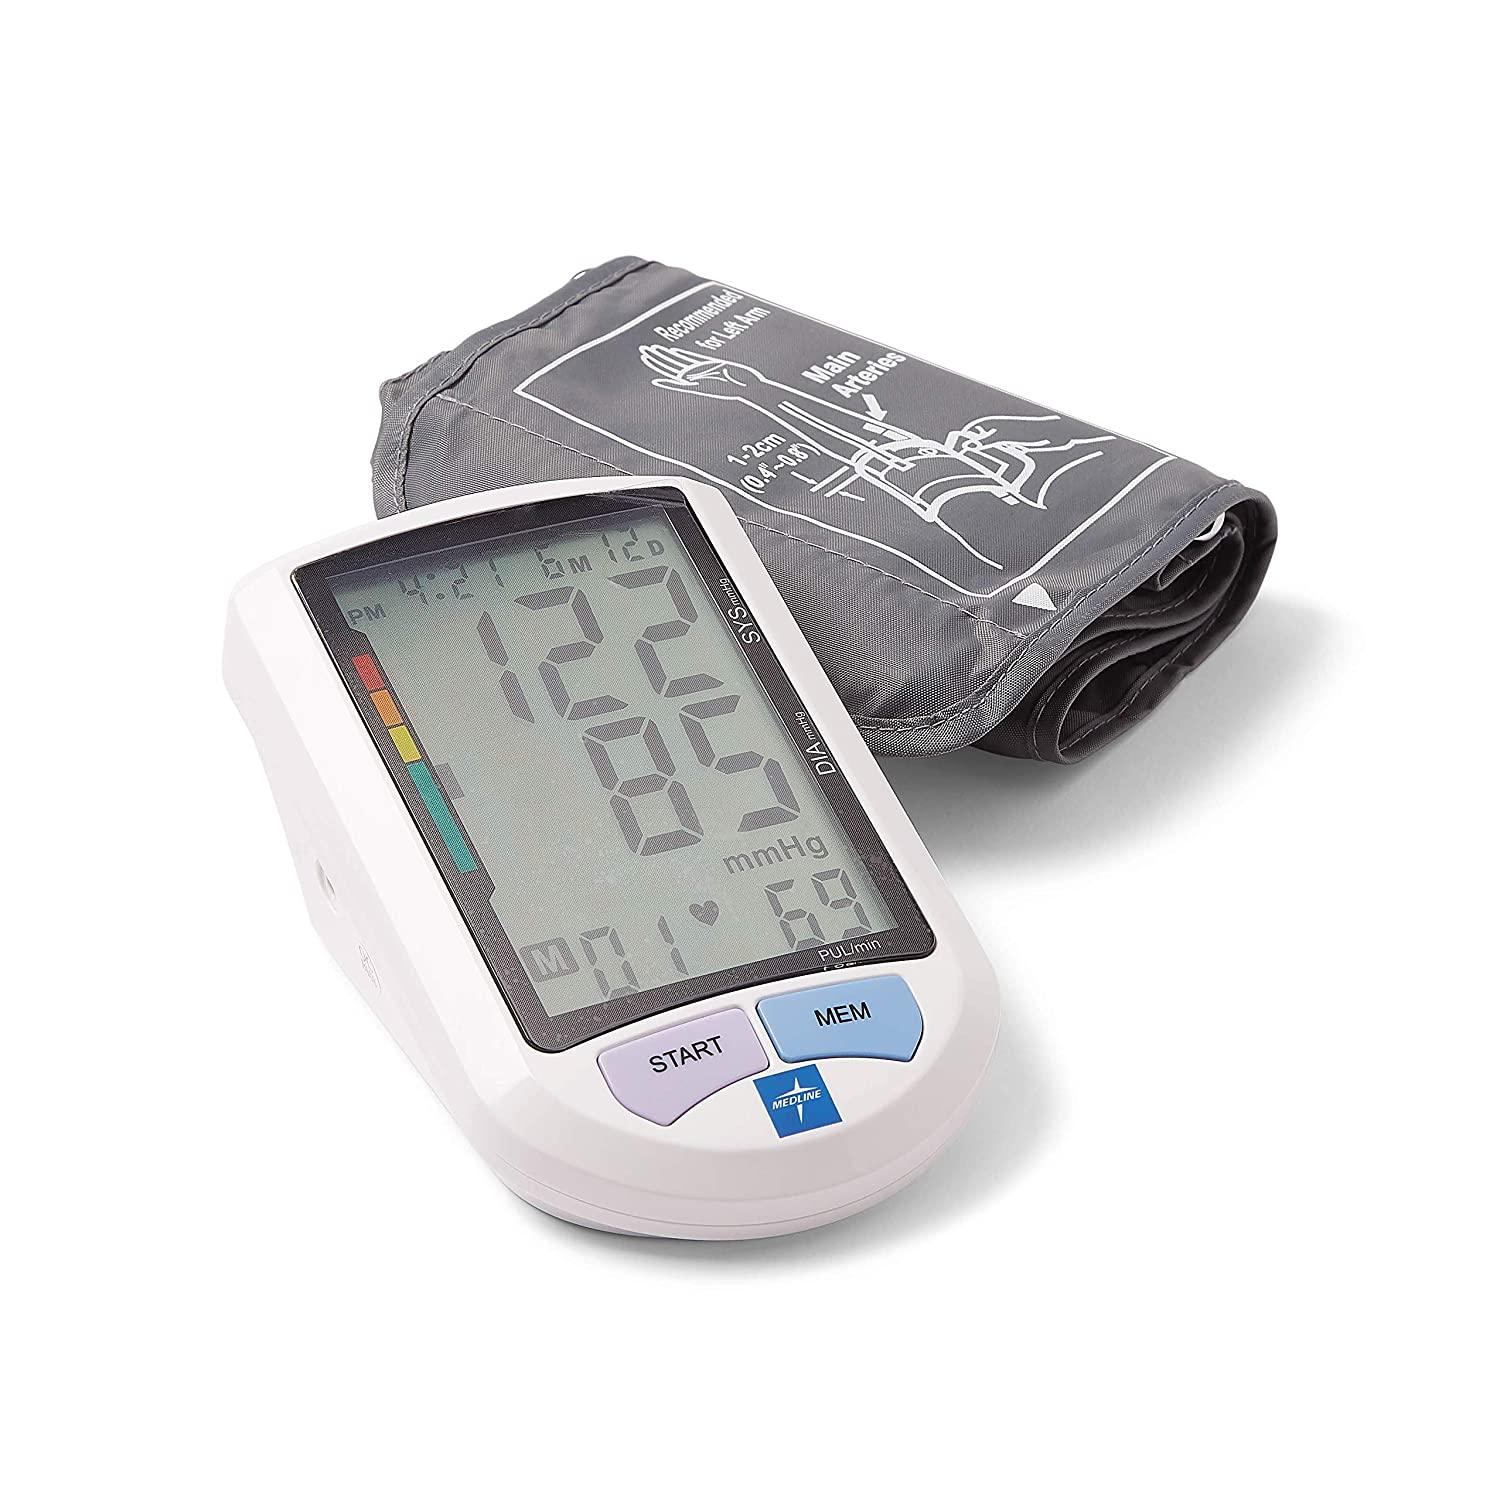 "Medline Automatic Digital Blood Pressure Monitor, Universal Upper Arm Adult Cuff, 8.5""-16.5"" BP Cuff Size, Batteries Included, 90 Memory Readings, Great for Home Use or Professional Medical Use"